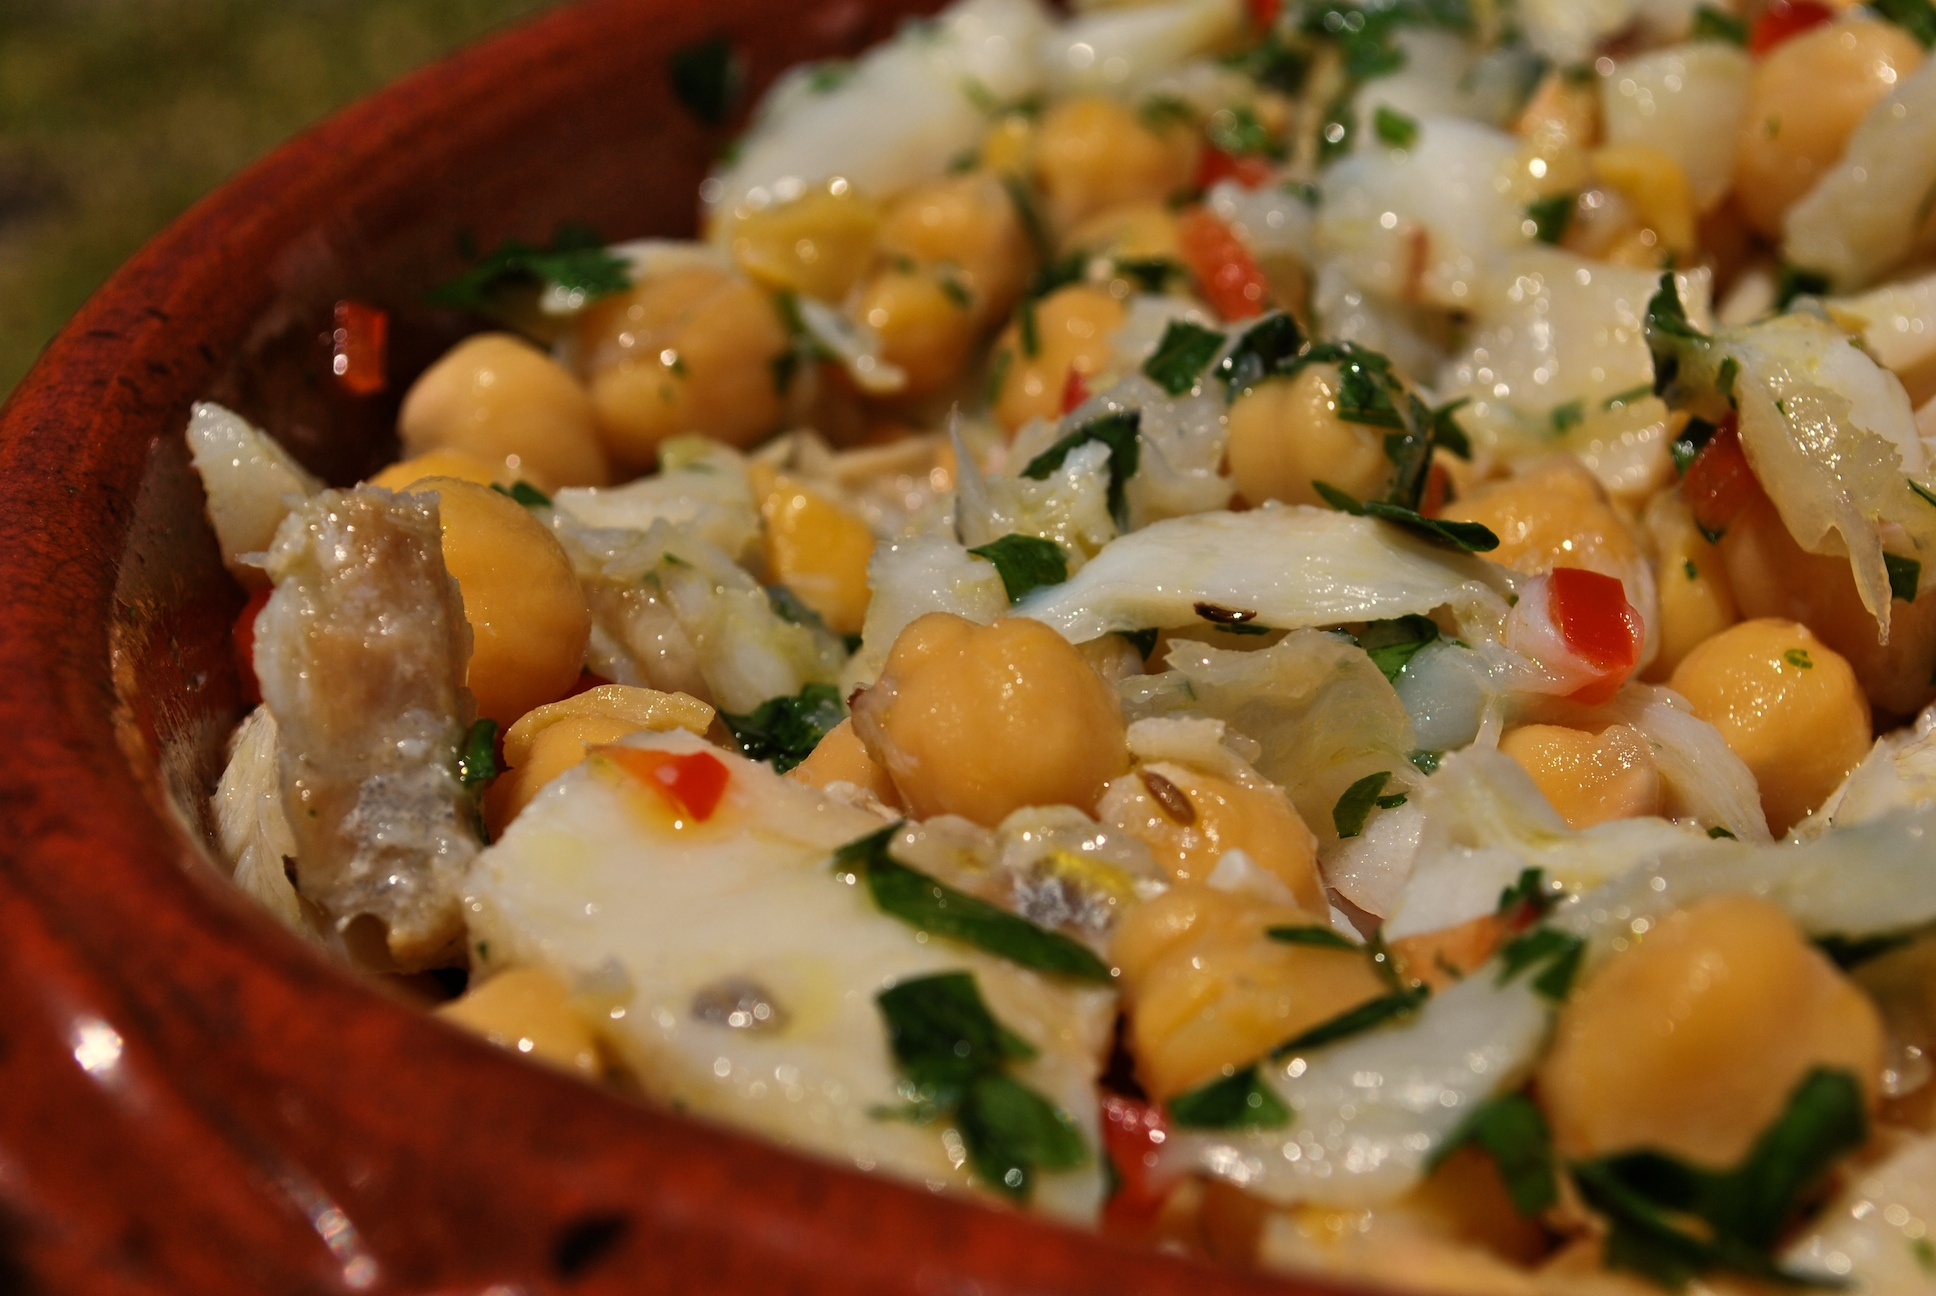 Salted Cod and Chick Pea Salad